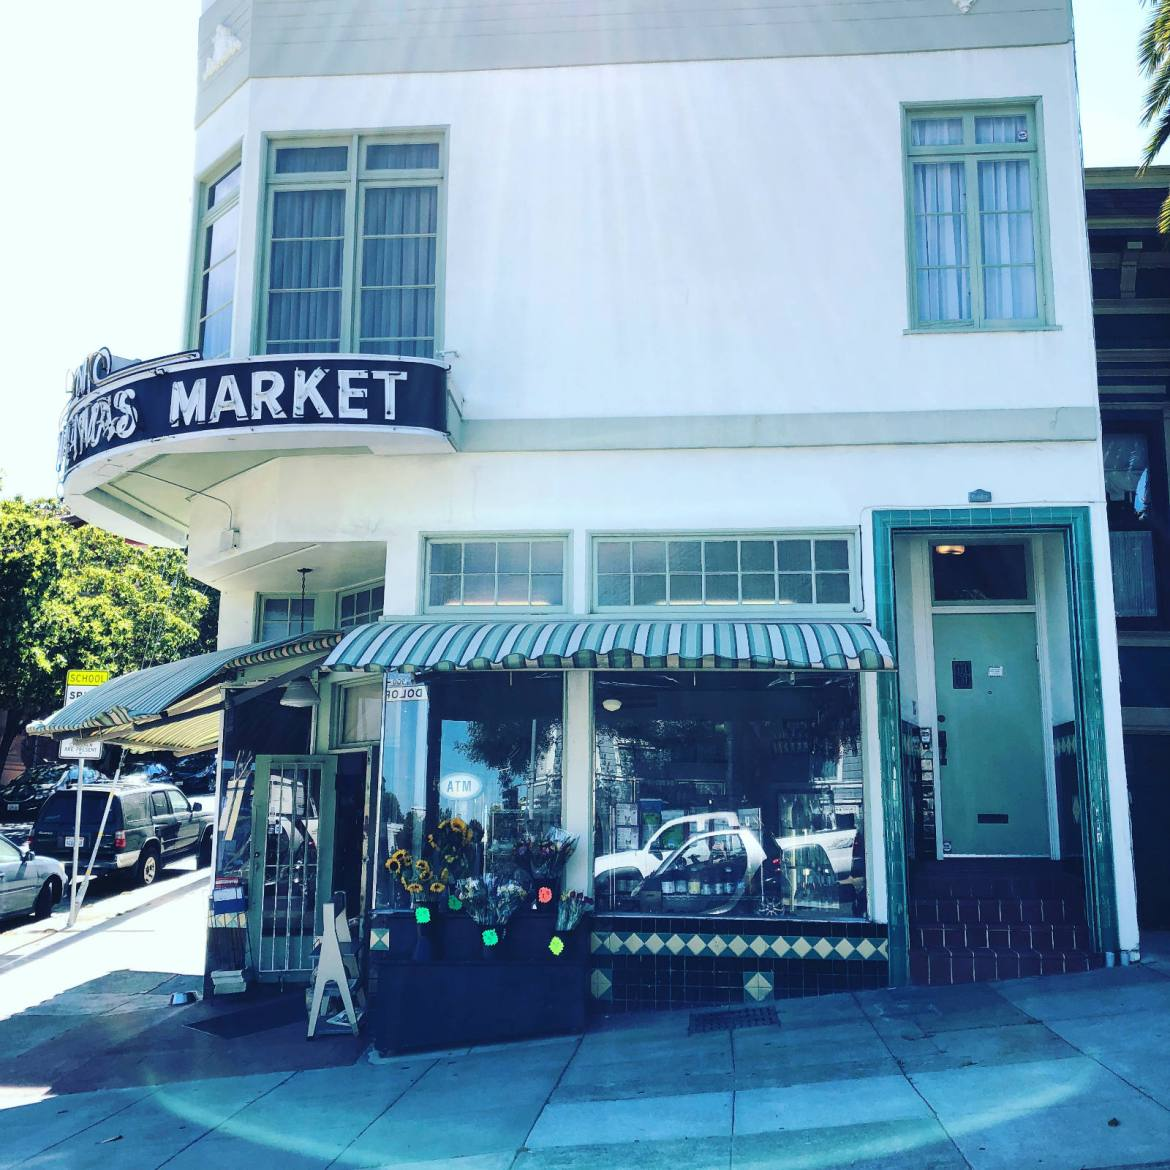 Mama's Market on Dolores Street